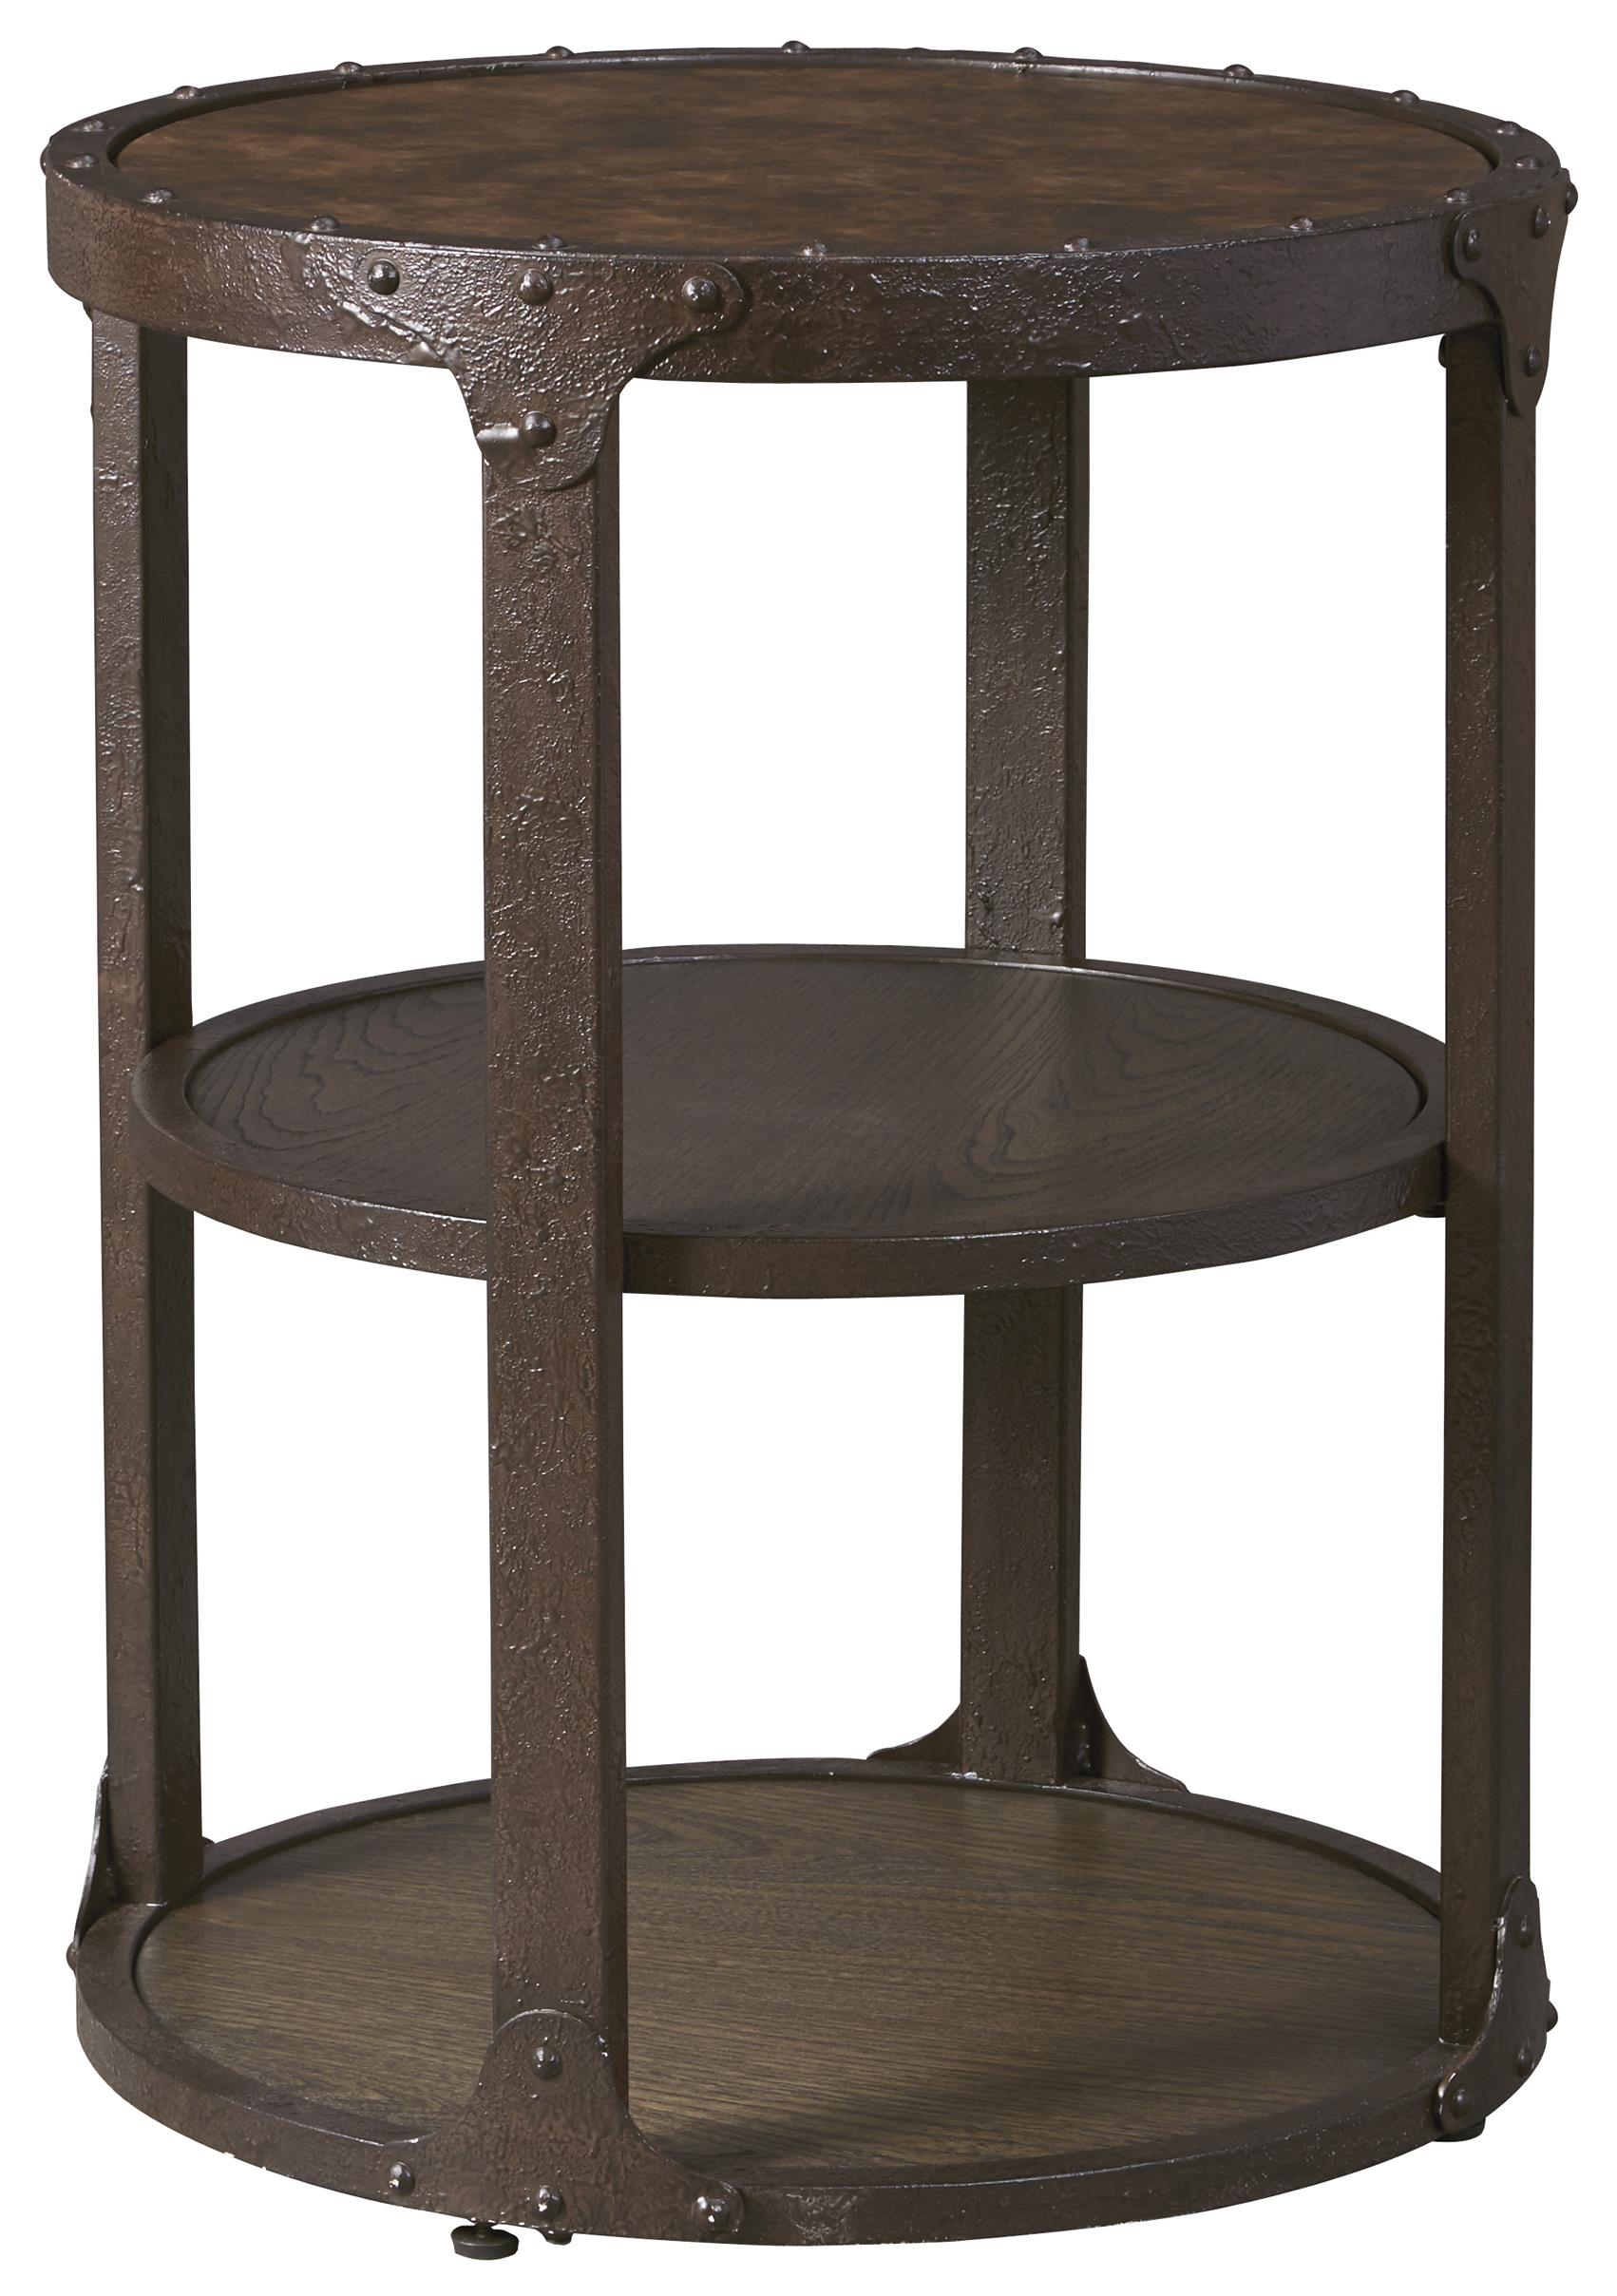 Signature Design by Ashley Shofern Round End Table - Item Number: T702-6